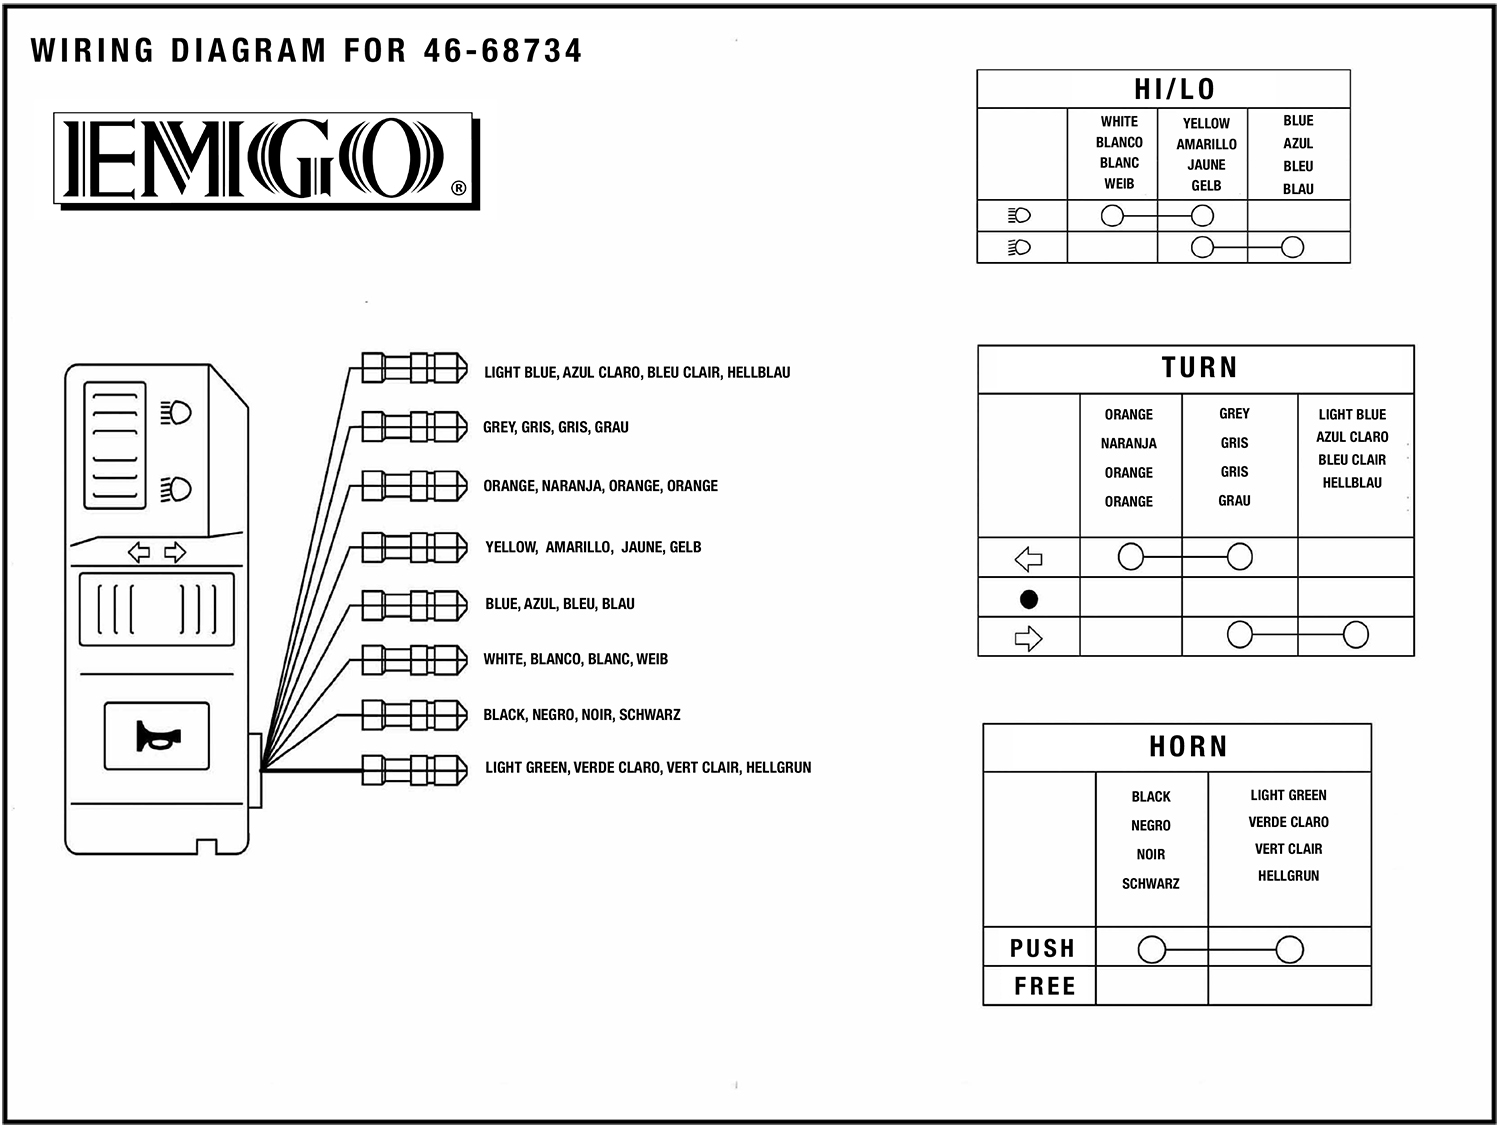 46 68734 wiring diagram left emgo schematic pin out handlebar multi switch motorcycle?t=1490389479 emgo universal handlebar multi switch left 46 68734 wiring cm450e wiring diagram at honlapkeszites.co